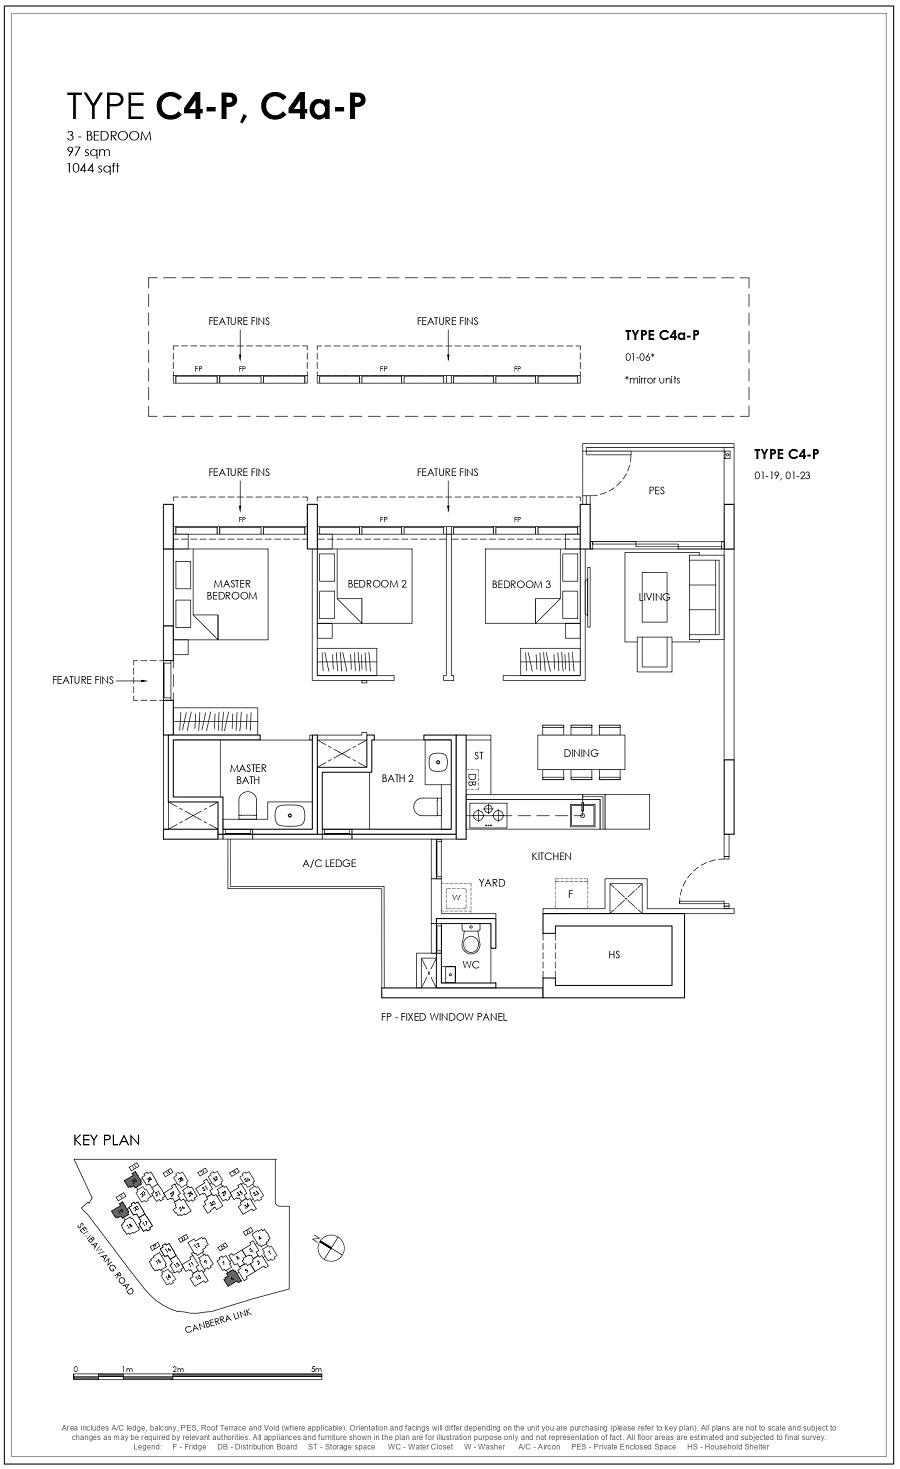 Provence Residence EC 3BR Type C4-P_C4a-P 97_1044